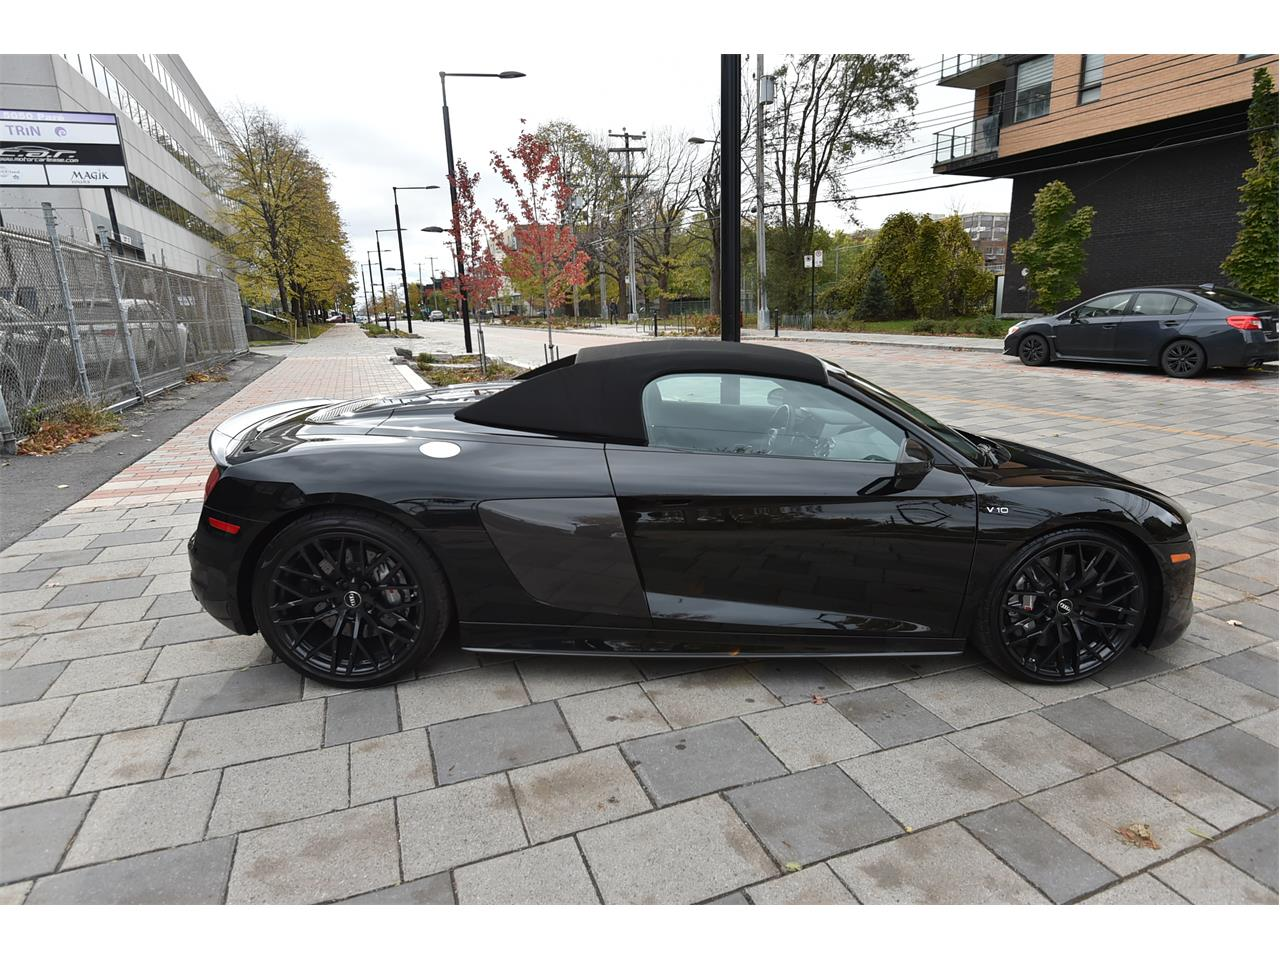 2018 Audi R8 (CC-1215277) for sale in Montreal, Quebec